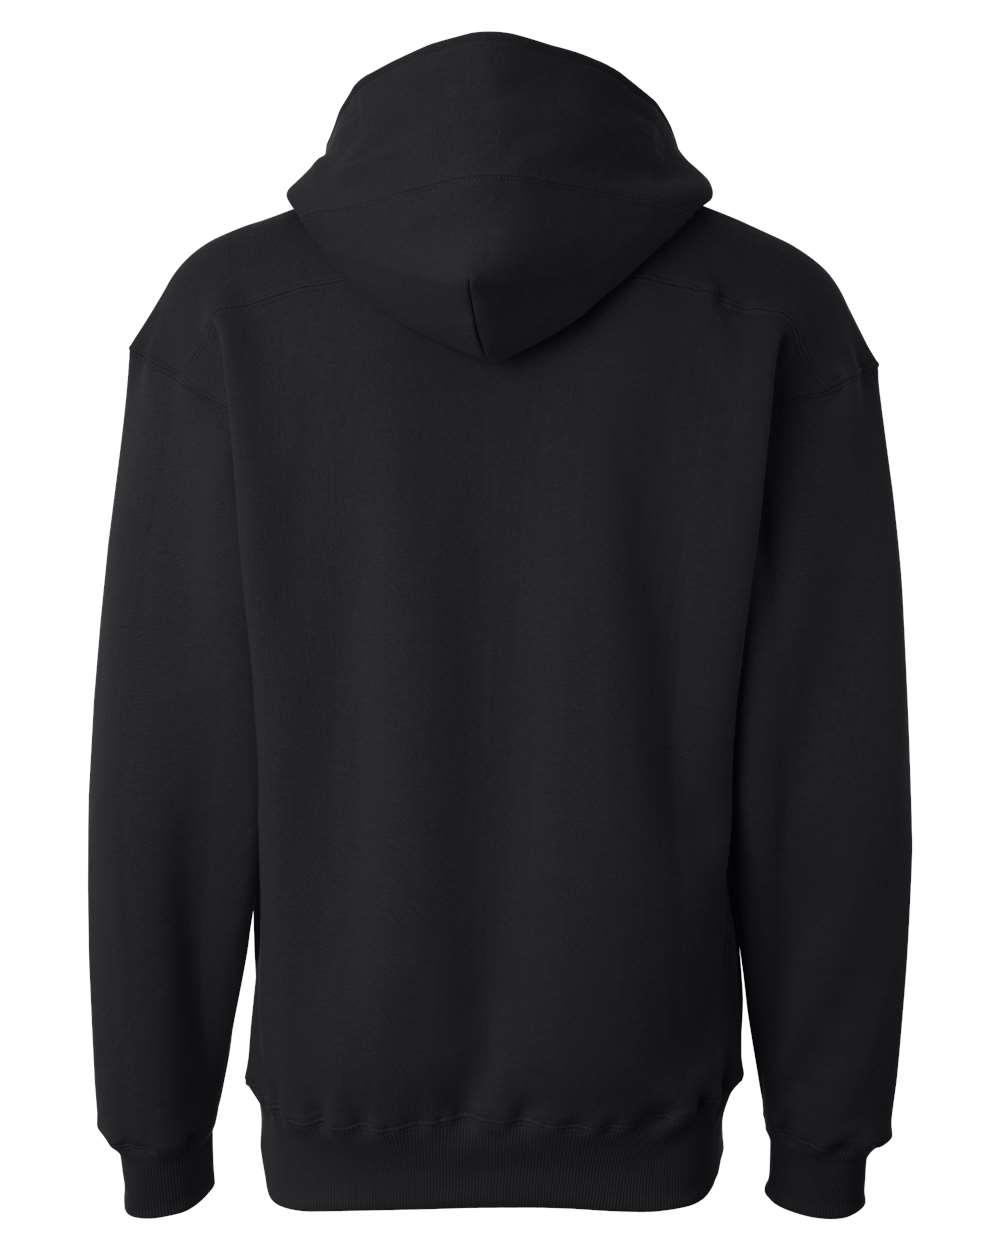 J-America-Mens-Blank-Sport-Lace-Hooded-Sweatshirt-8830-up-to-3XL thumbnail 7